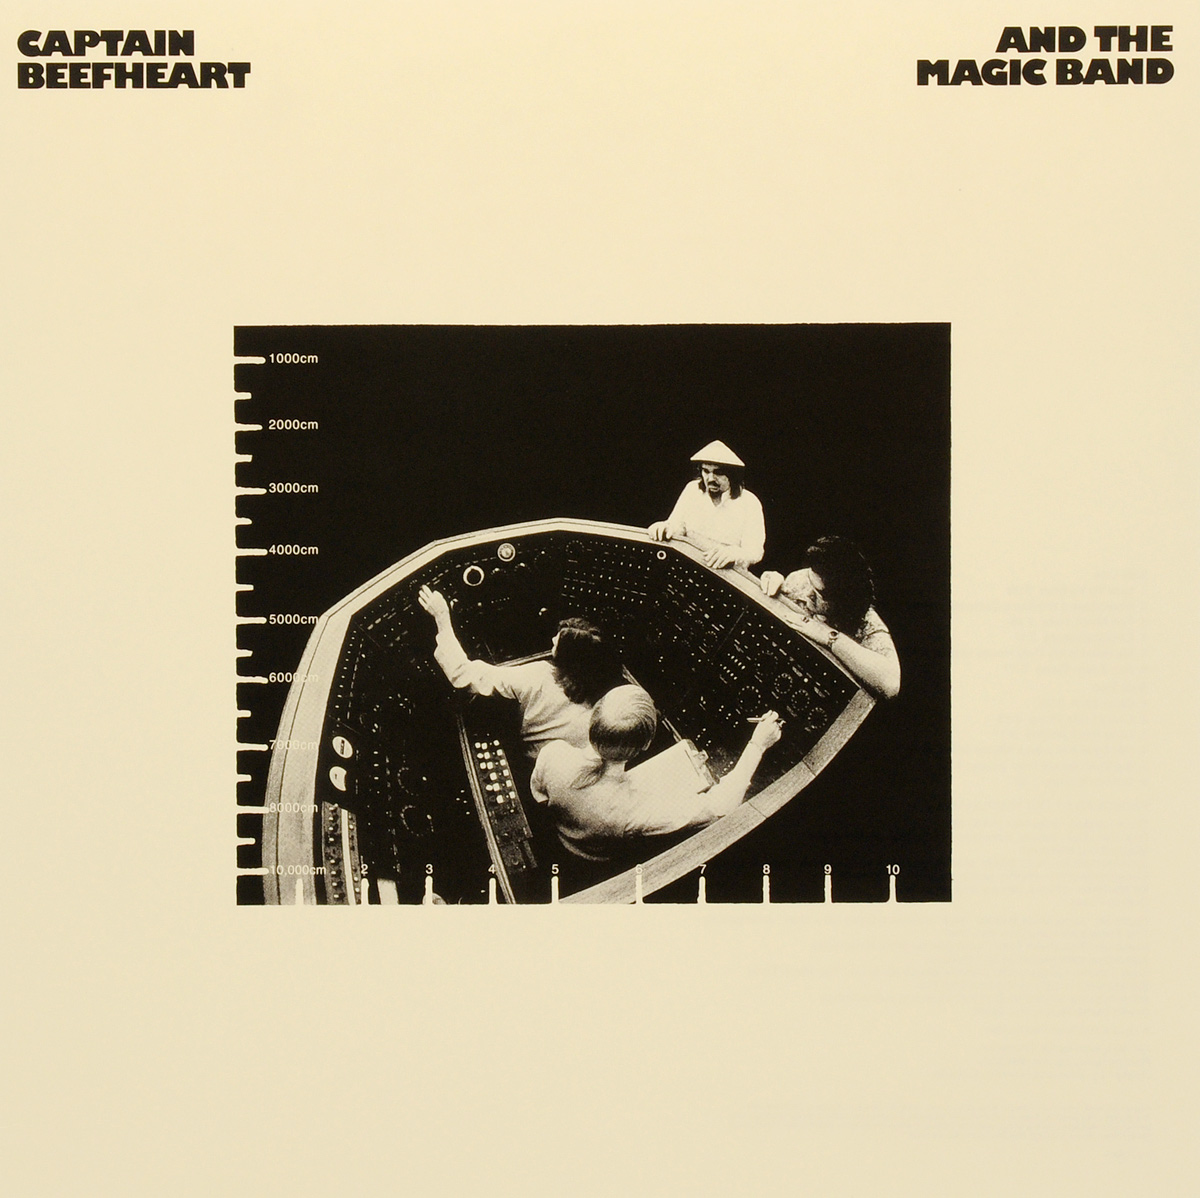 калейдоскоп the captain Captain Beefheart,The Magic Band Captain Beefheart And The Magic Band. Clear Spot (LP)